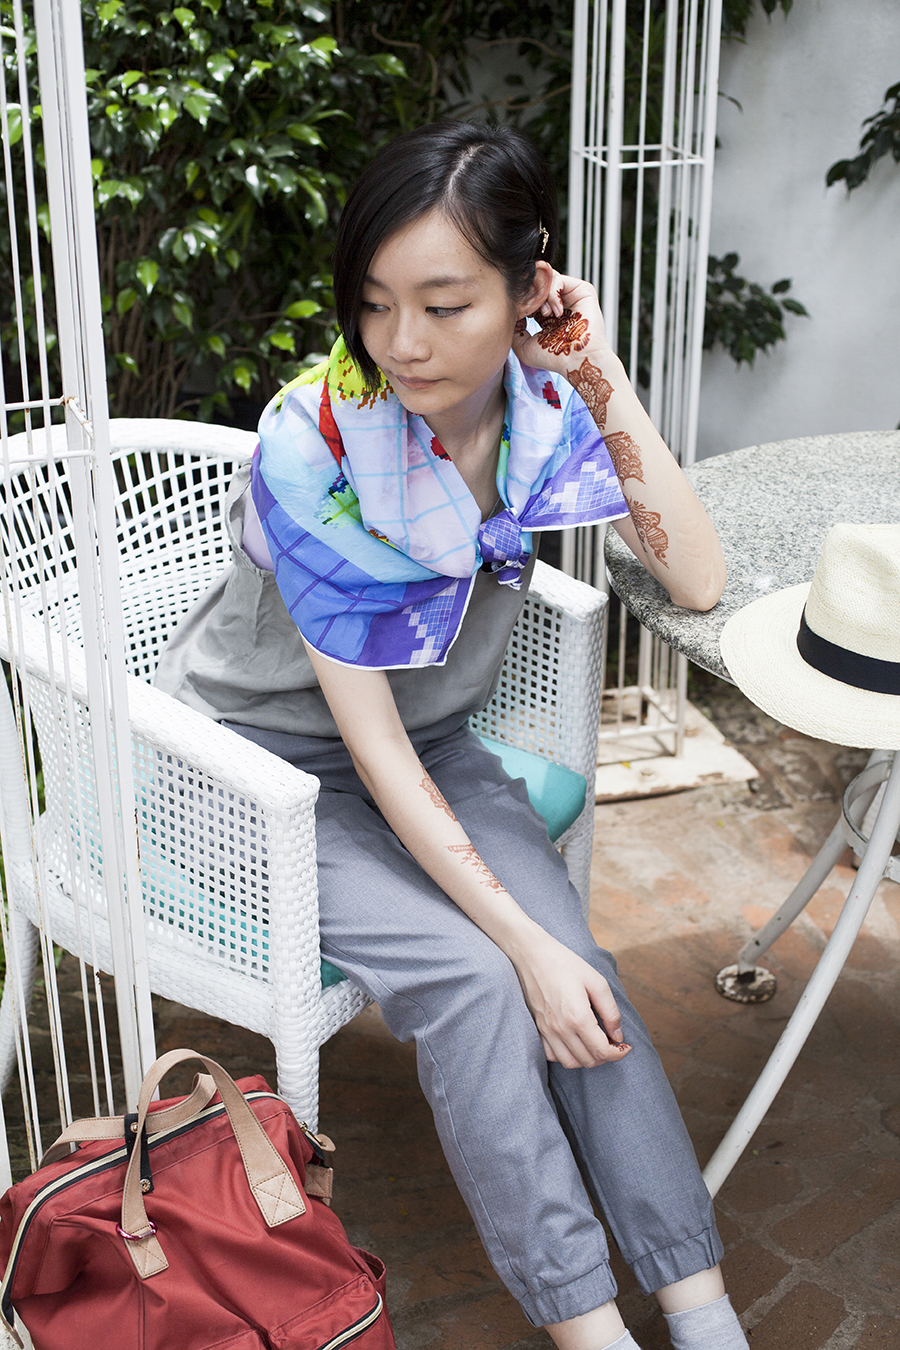 Shopping in India outfit: Cotton On top, Uniqlo UV straw hat, RV Designs silk duck hunt scarf, Uniqlo grey jogger pants, Taobao grey socks.